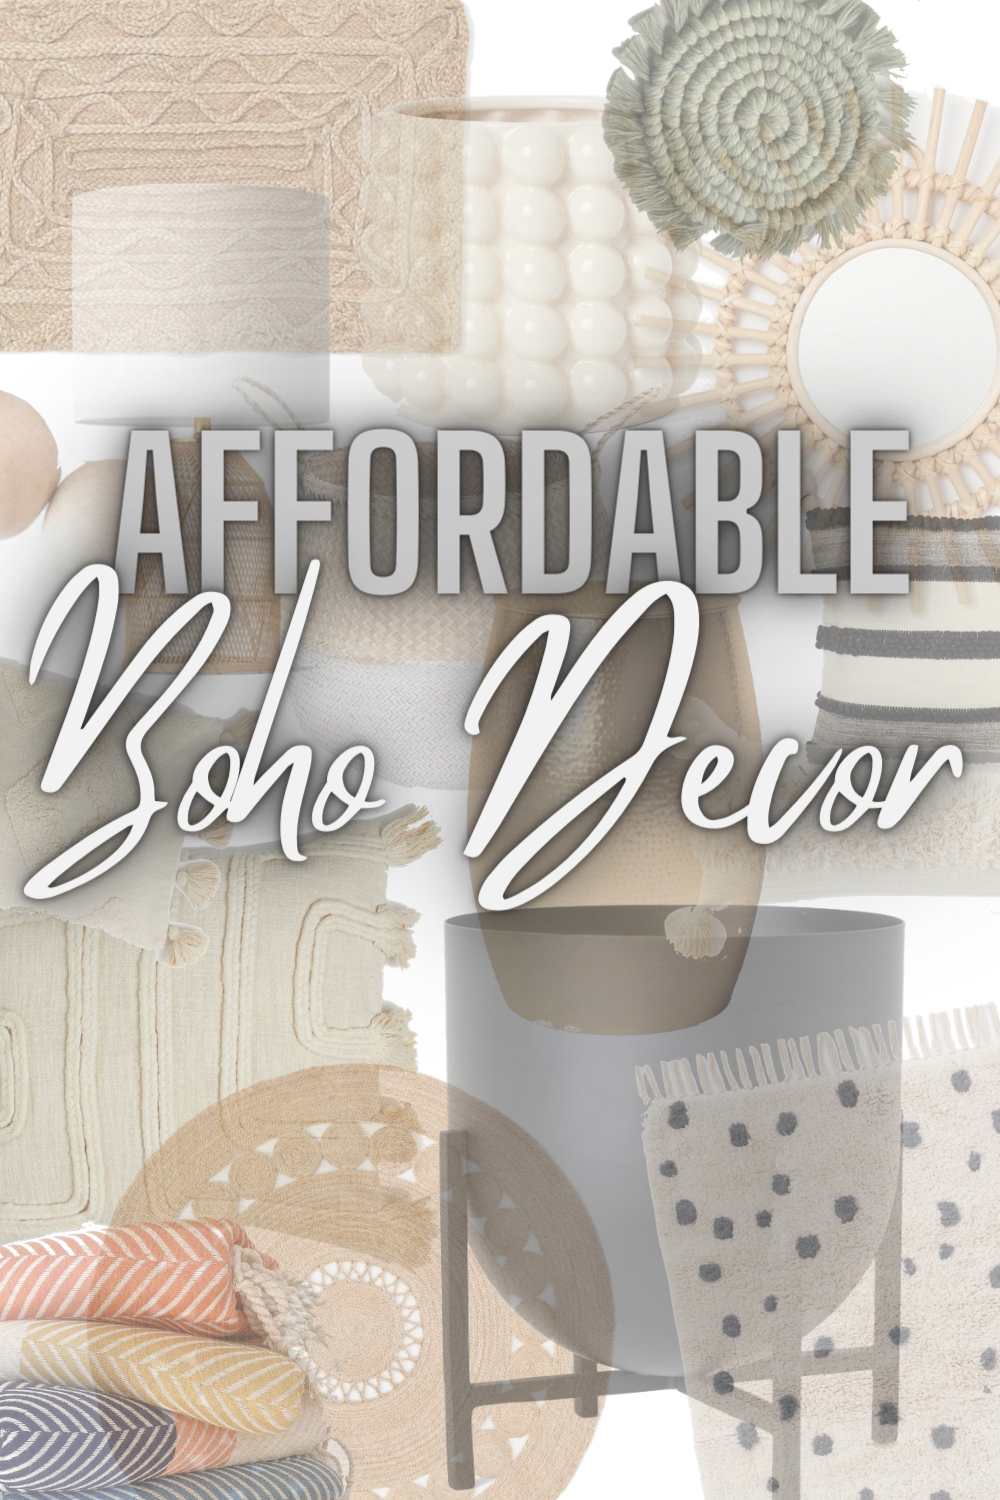 Affordable Boho Home Decor - Looking for a home decor refresh? Today I'm sharing my favorite affordable boho home decor finds! | Boho Home Decor - Boho Style Home Decor - Affordable Home Decor